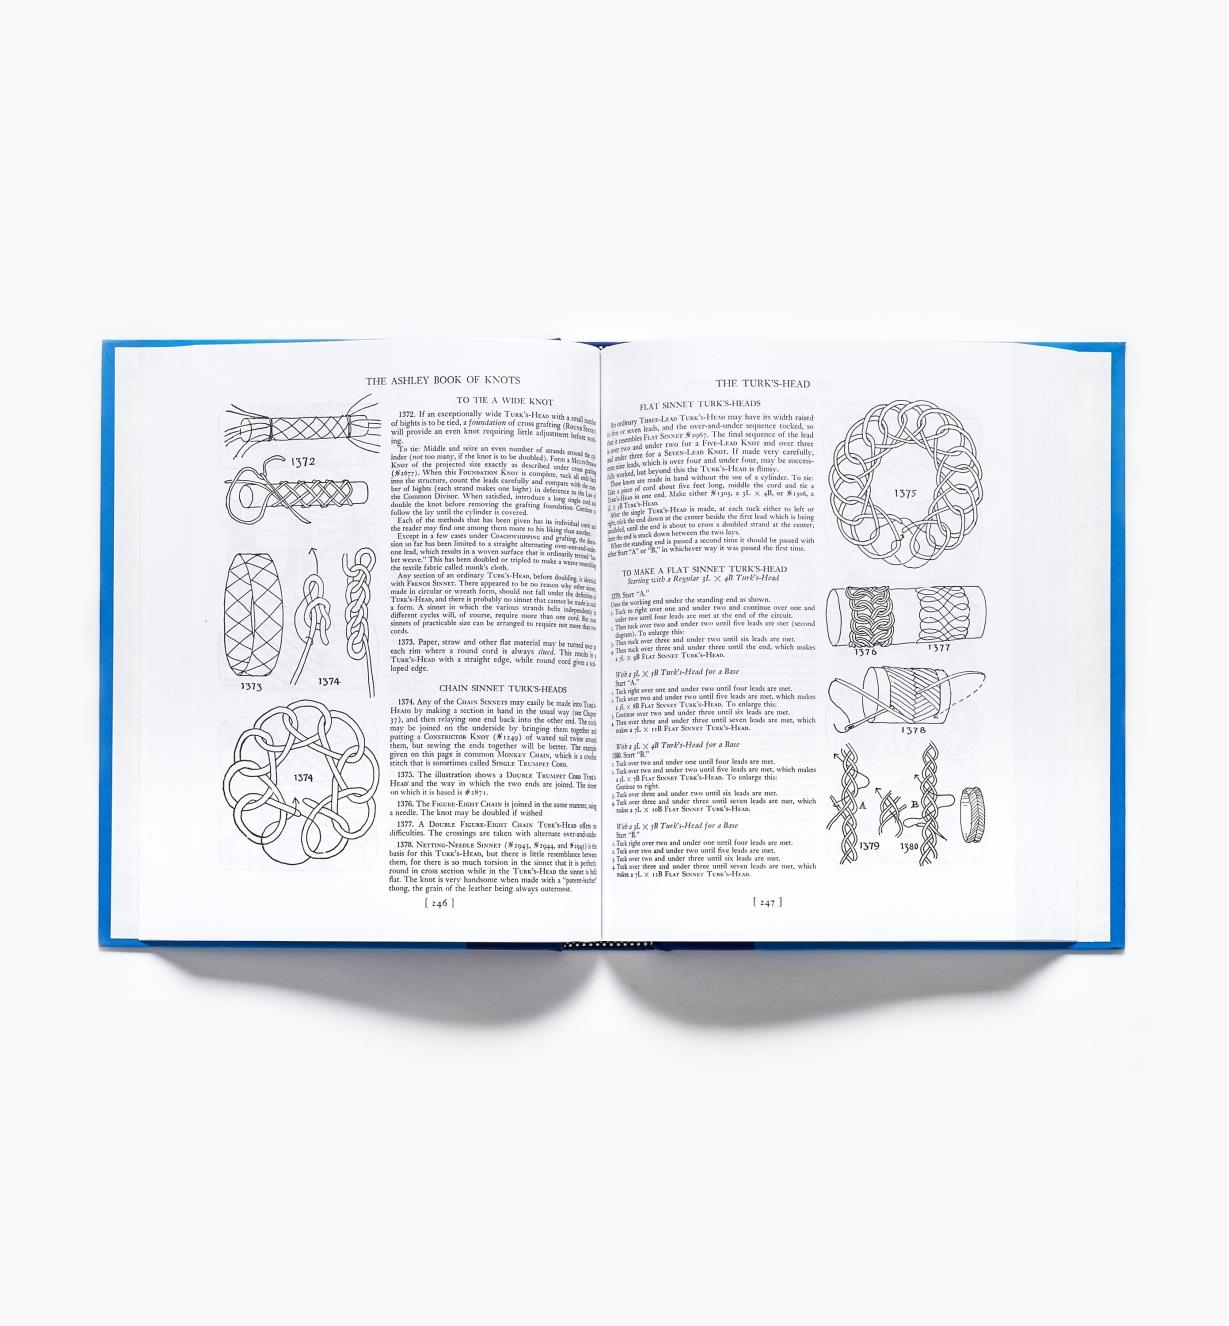 45L0101 - The Ashley Book of Knots